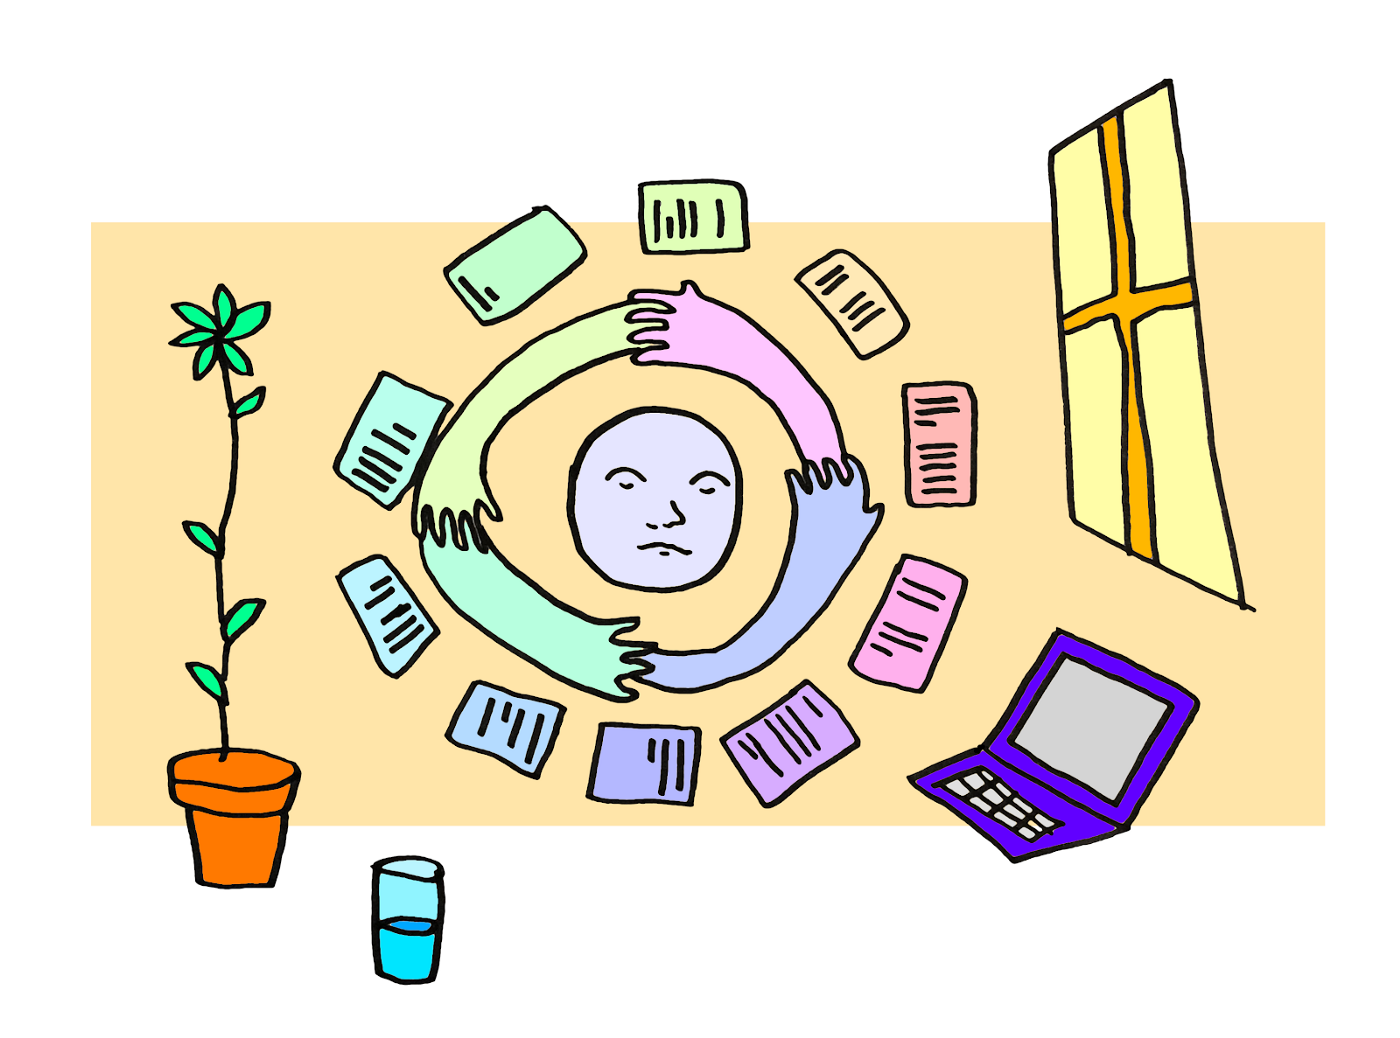 A calm face with arms and papers around it in a circle. There is a plant, water, laptop, and window.